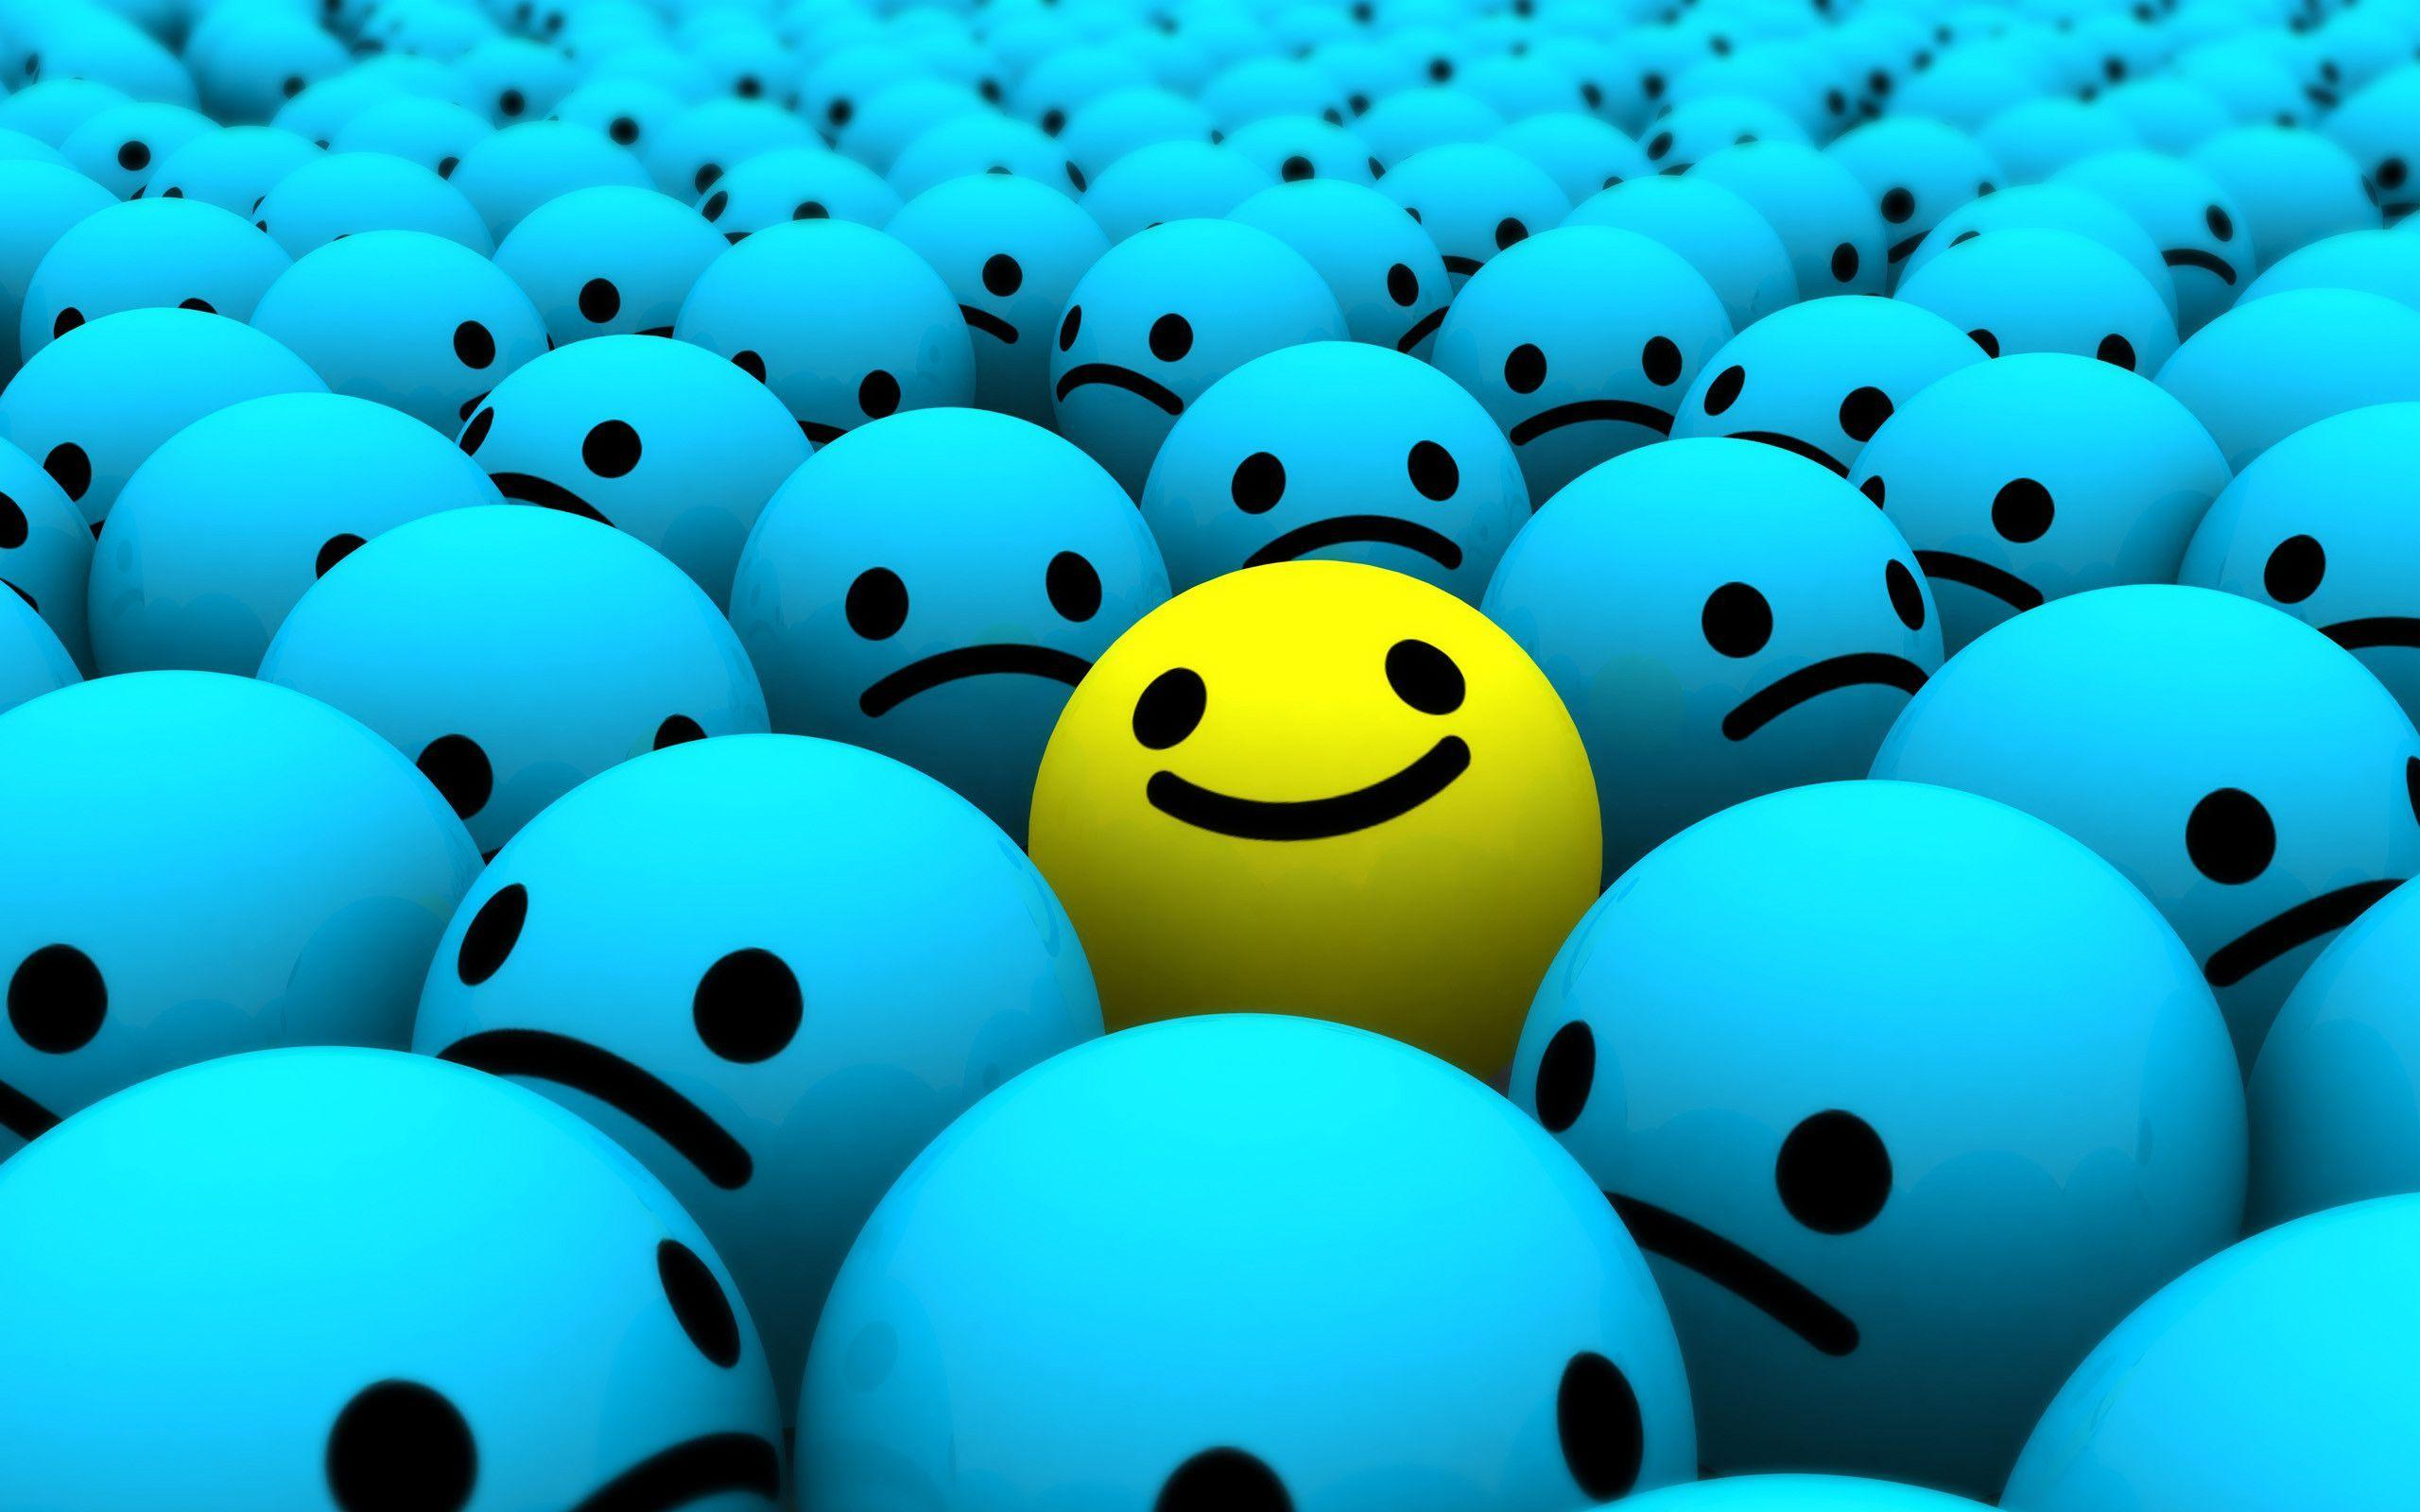 Smiley Face Desktop WallPaper HD